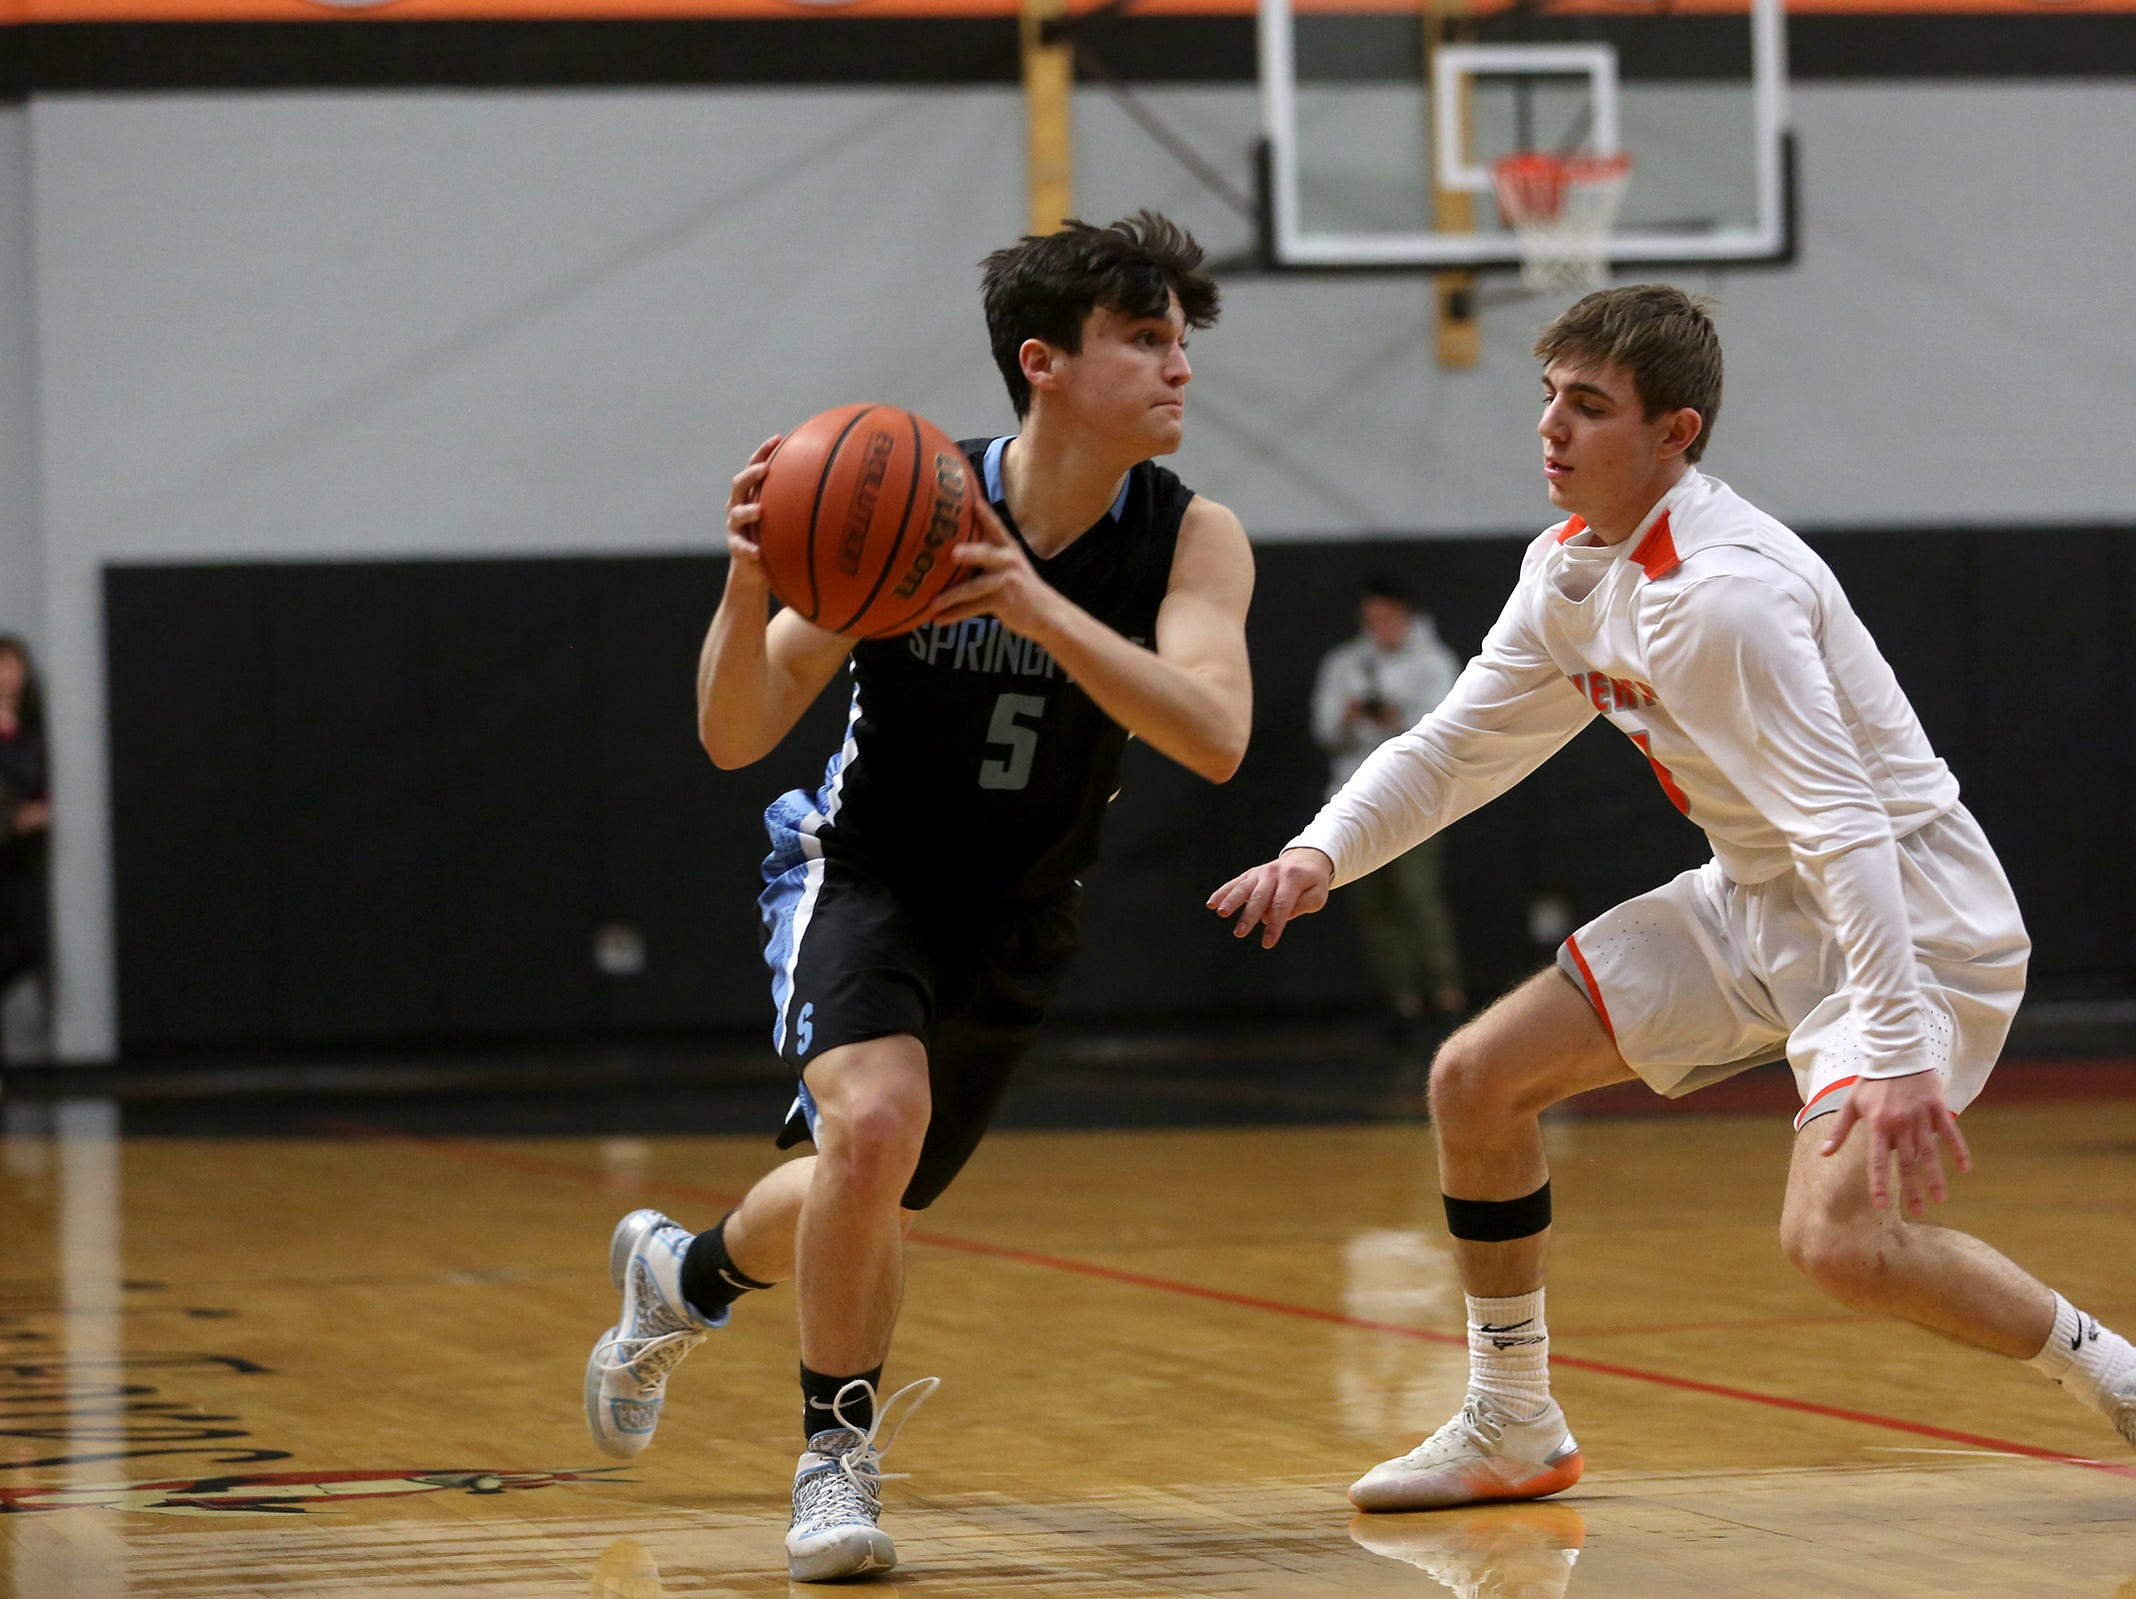 Springfields' Zack Sorber (5) attempts to make his way around Silverton's Drake Ulven (5) during the Silverton vs. Springfield boys basketball OSAA state playoffs game at Silverton High School in Silverton on Saturday, March 2, 2019.